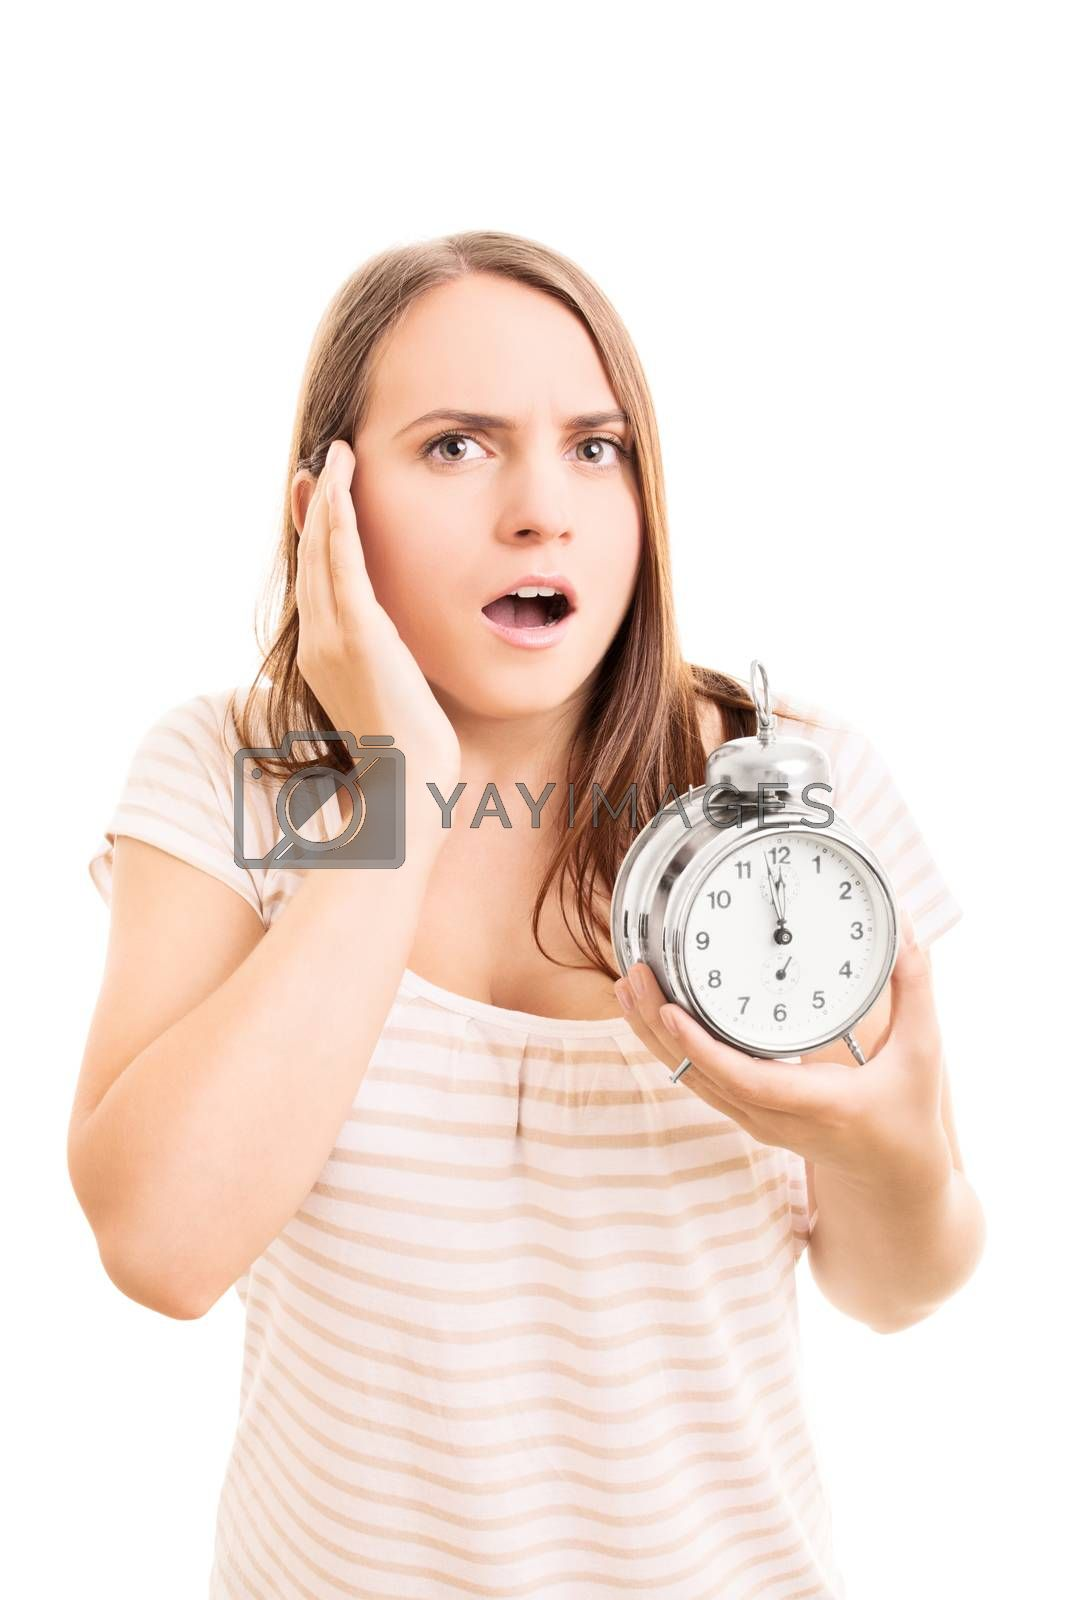 Portrait of a beautiful young woman holding an alarm clock, leaving an impression she's late for something, isolated on white background.